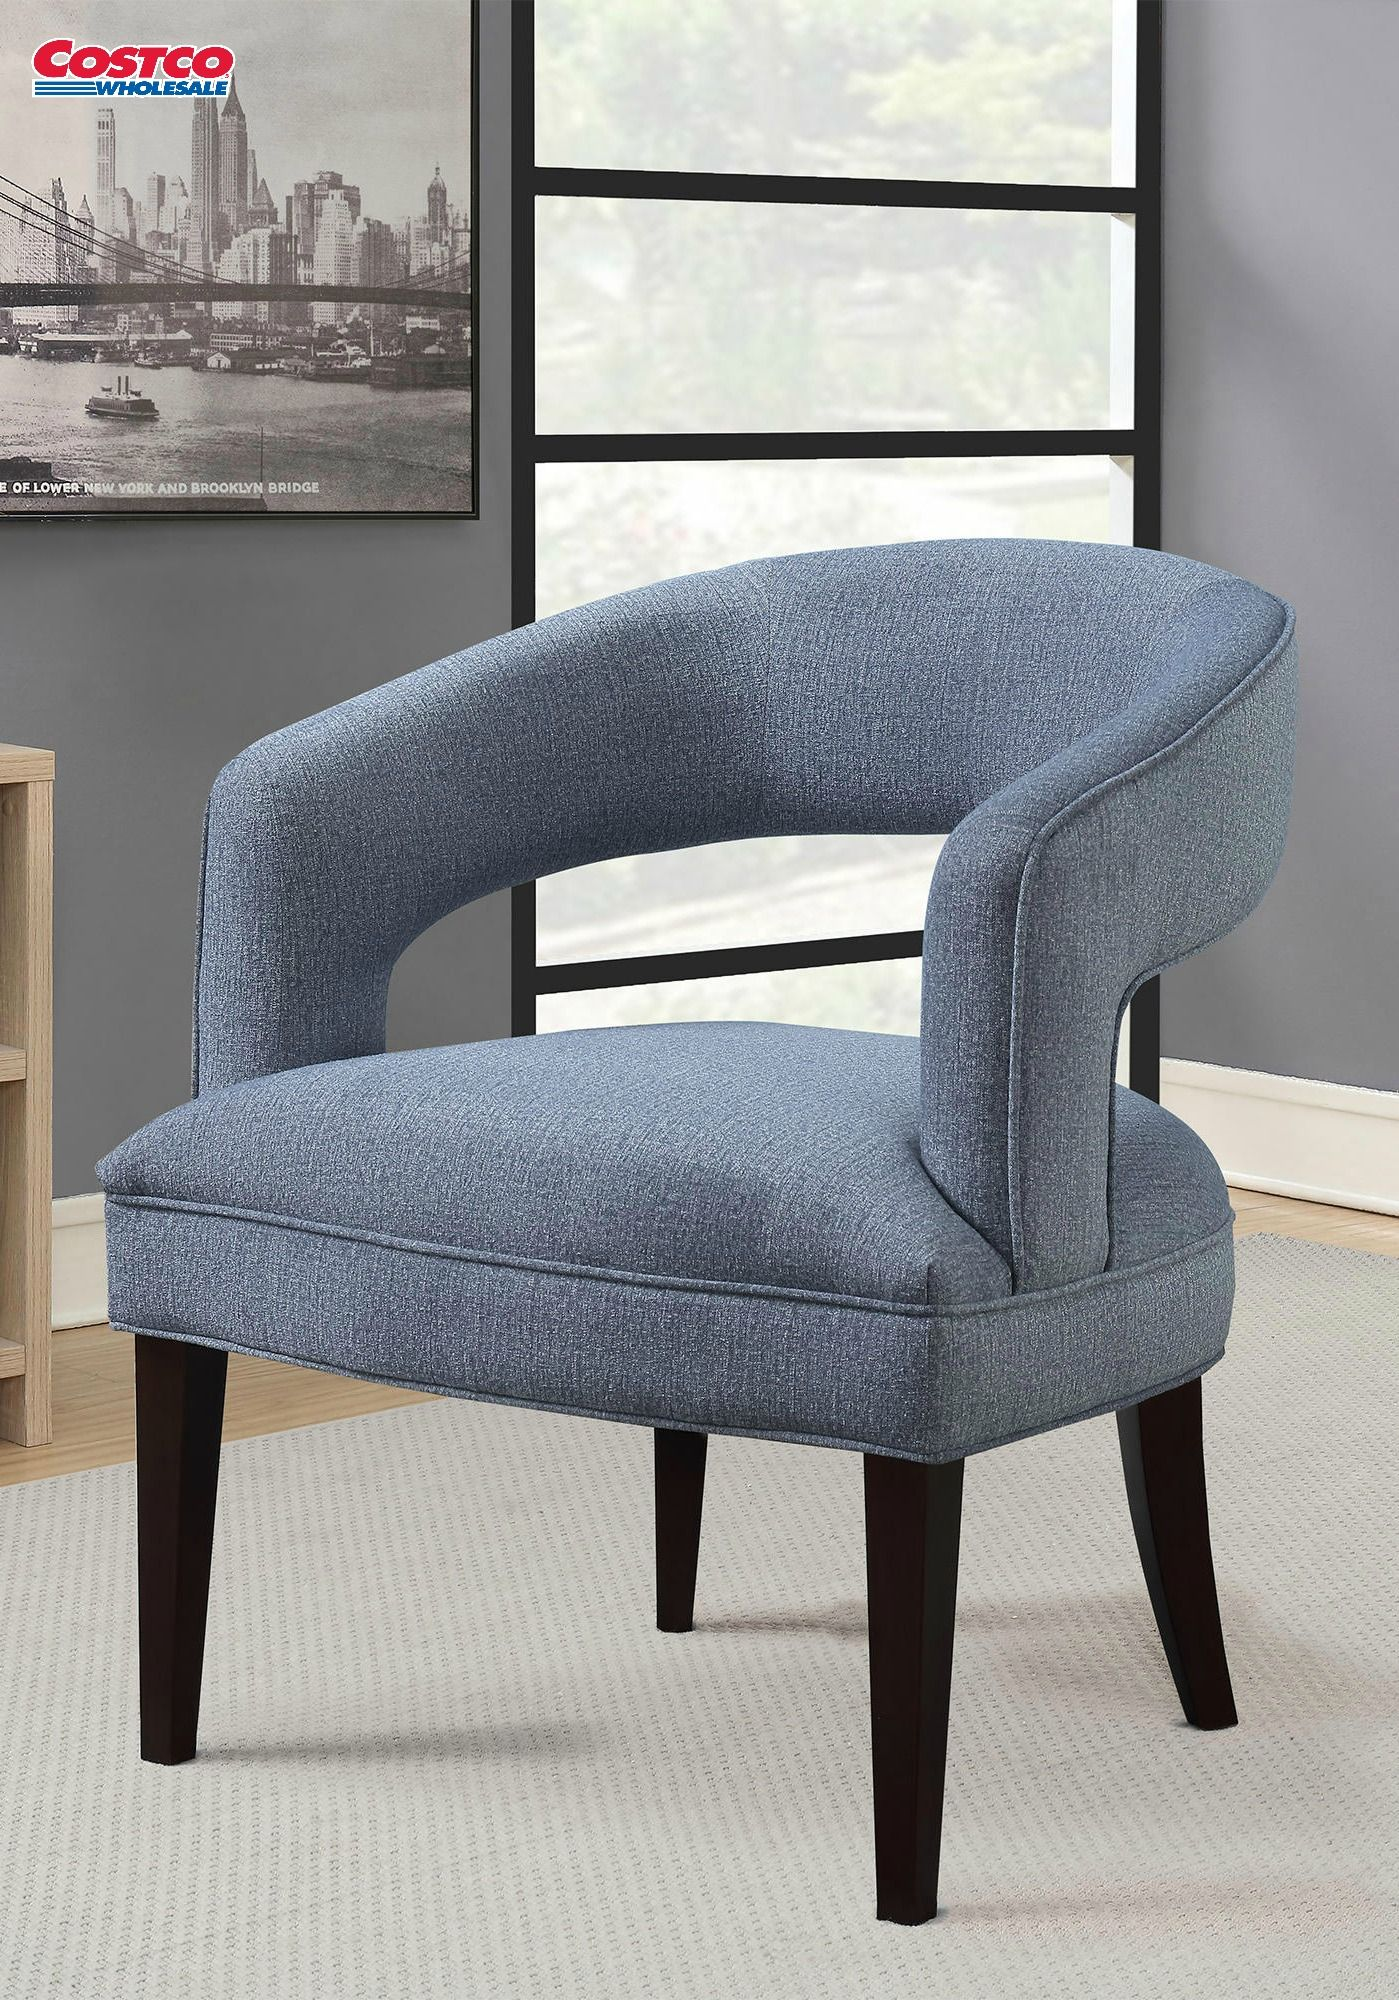 Accent Chairs At Costco The Design Of The Hans Fabric Accent Chair Adds Style And